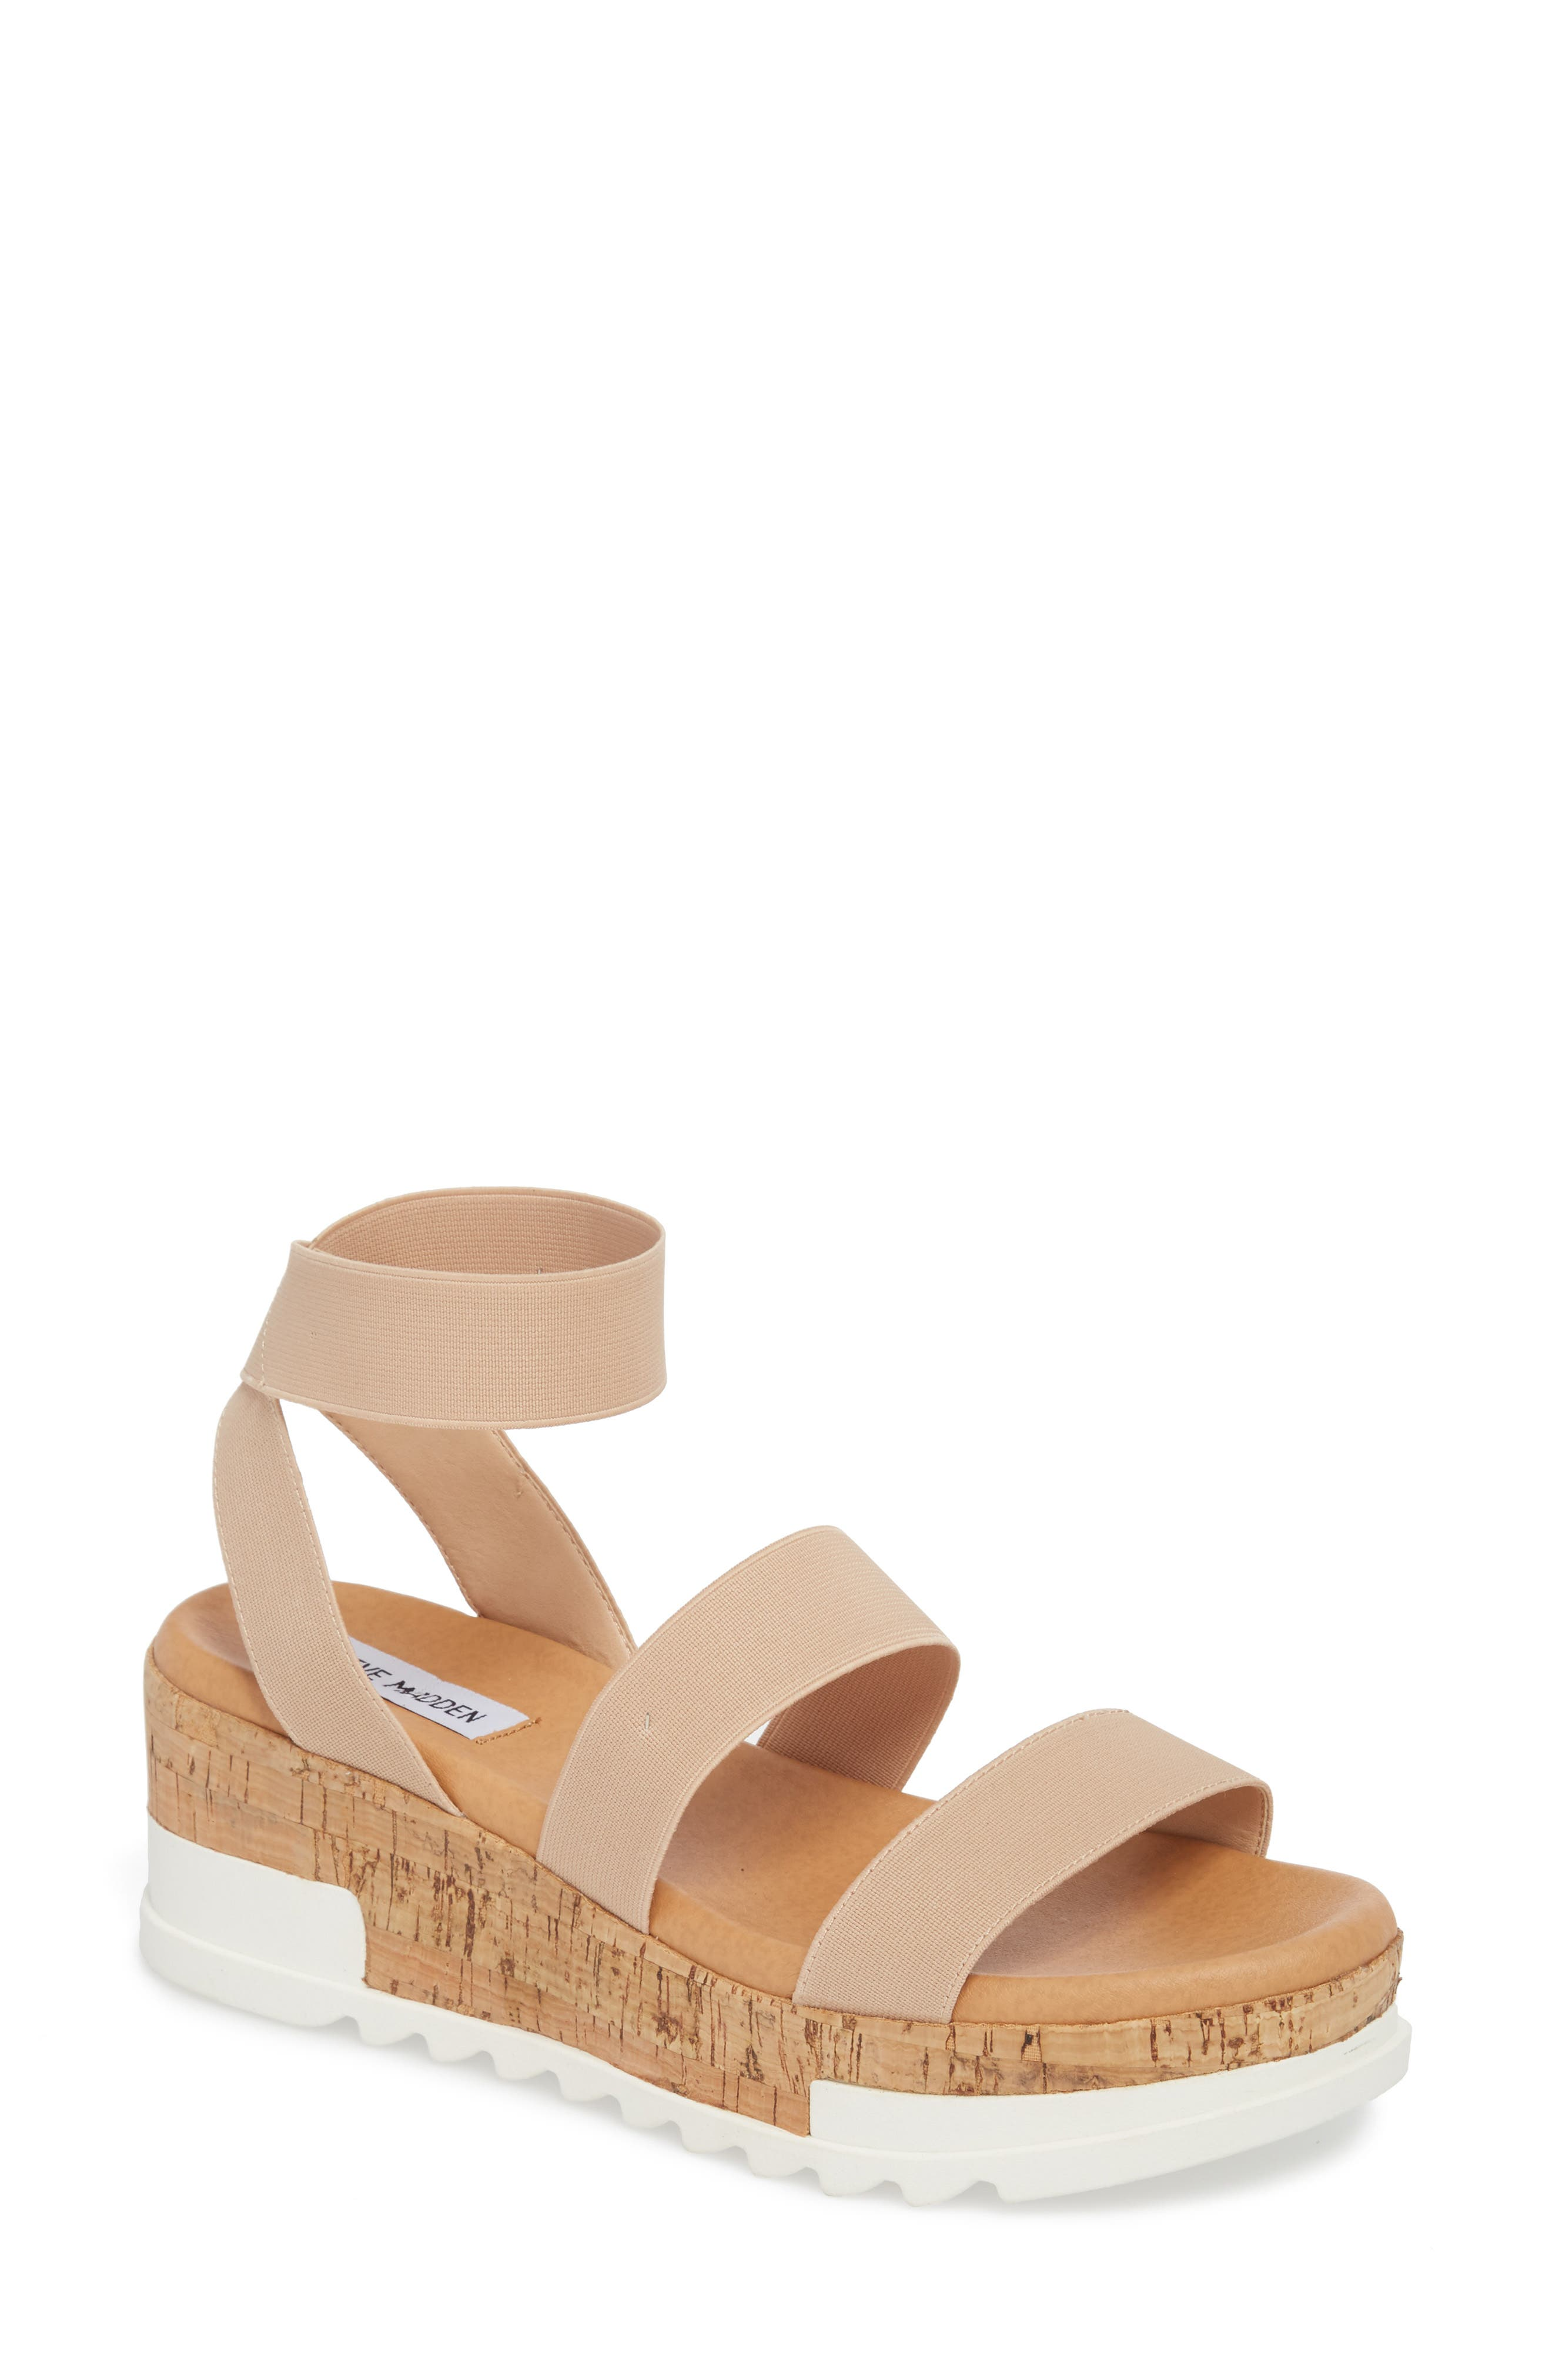 Womens Suede Open Toe Sandal Wedge Tie Up Strappy Espadrille Chunky Platform Wedge Sandal by Nevera